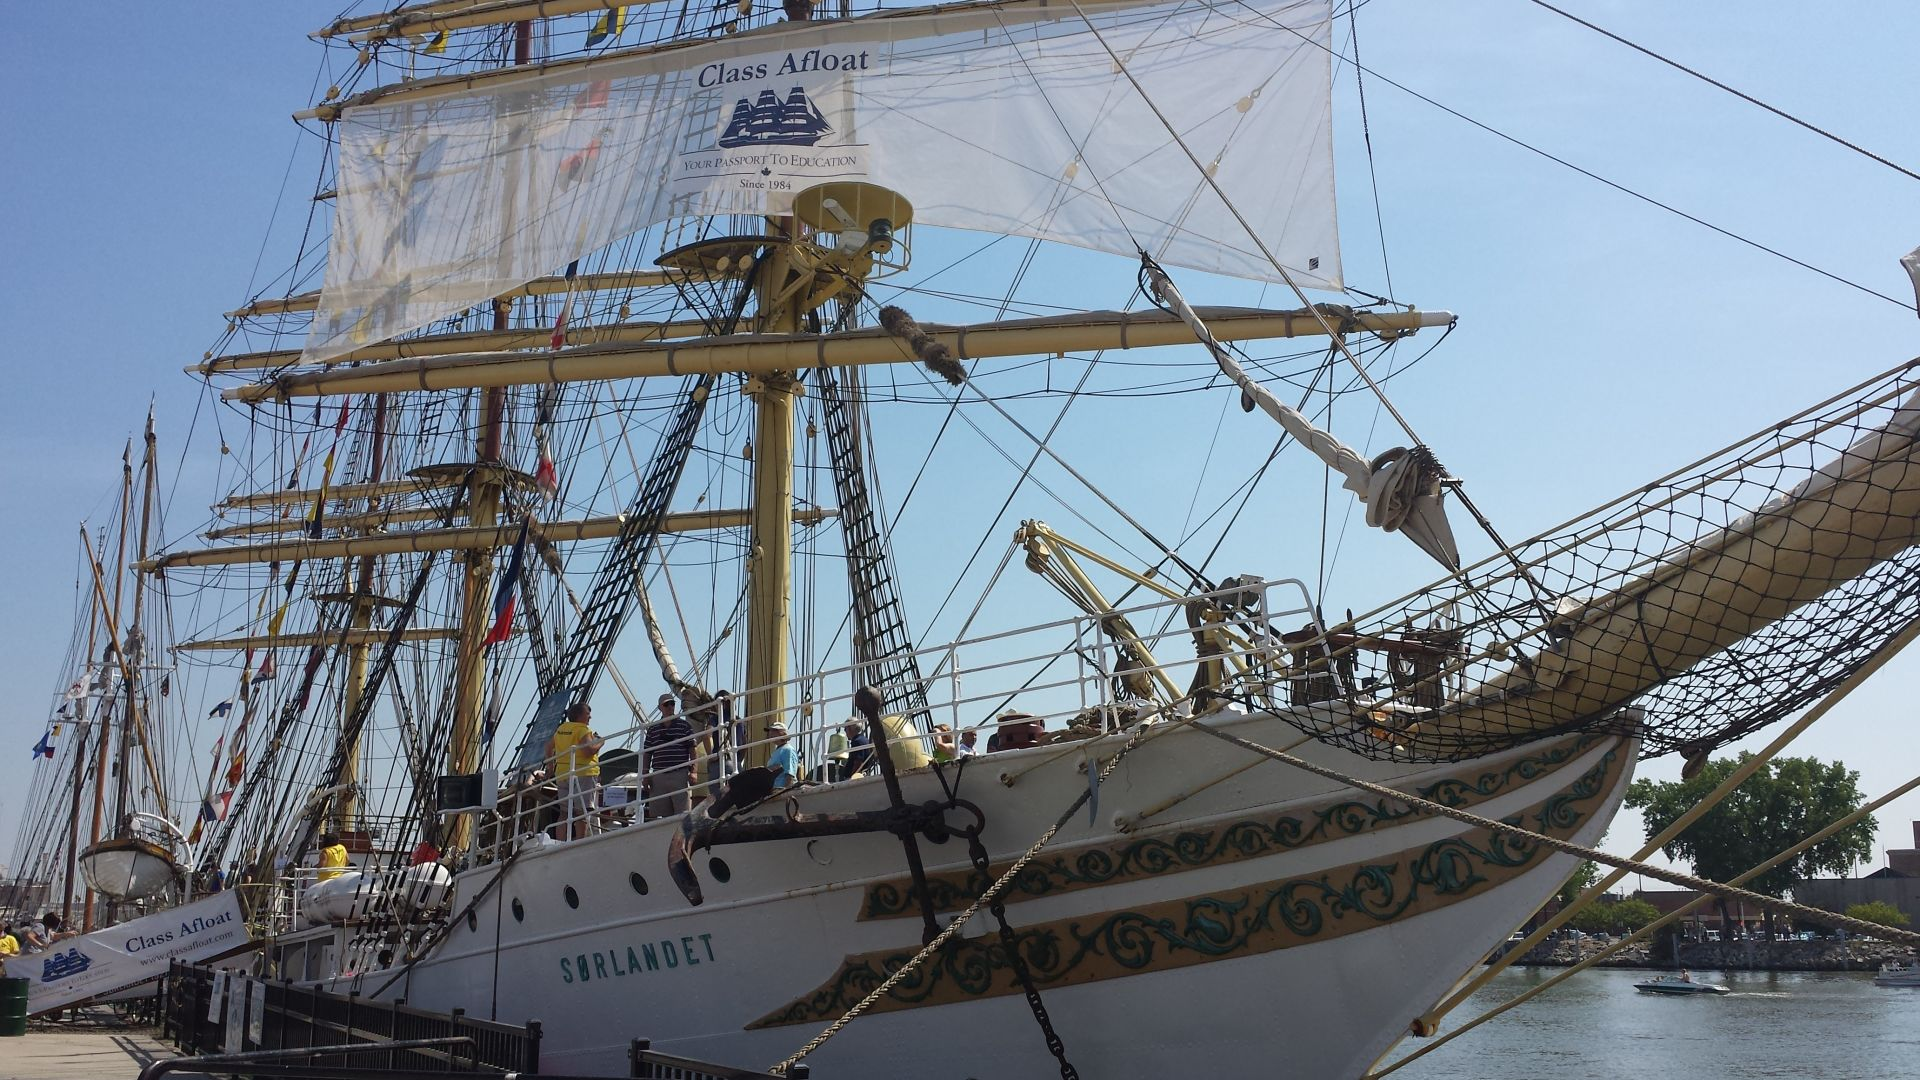 The Tall Ship Festival is Back! August 5th-7th